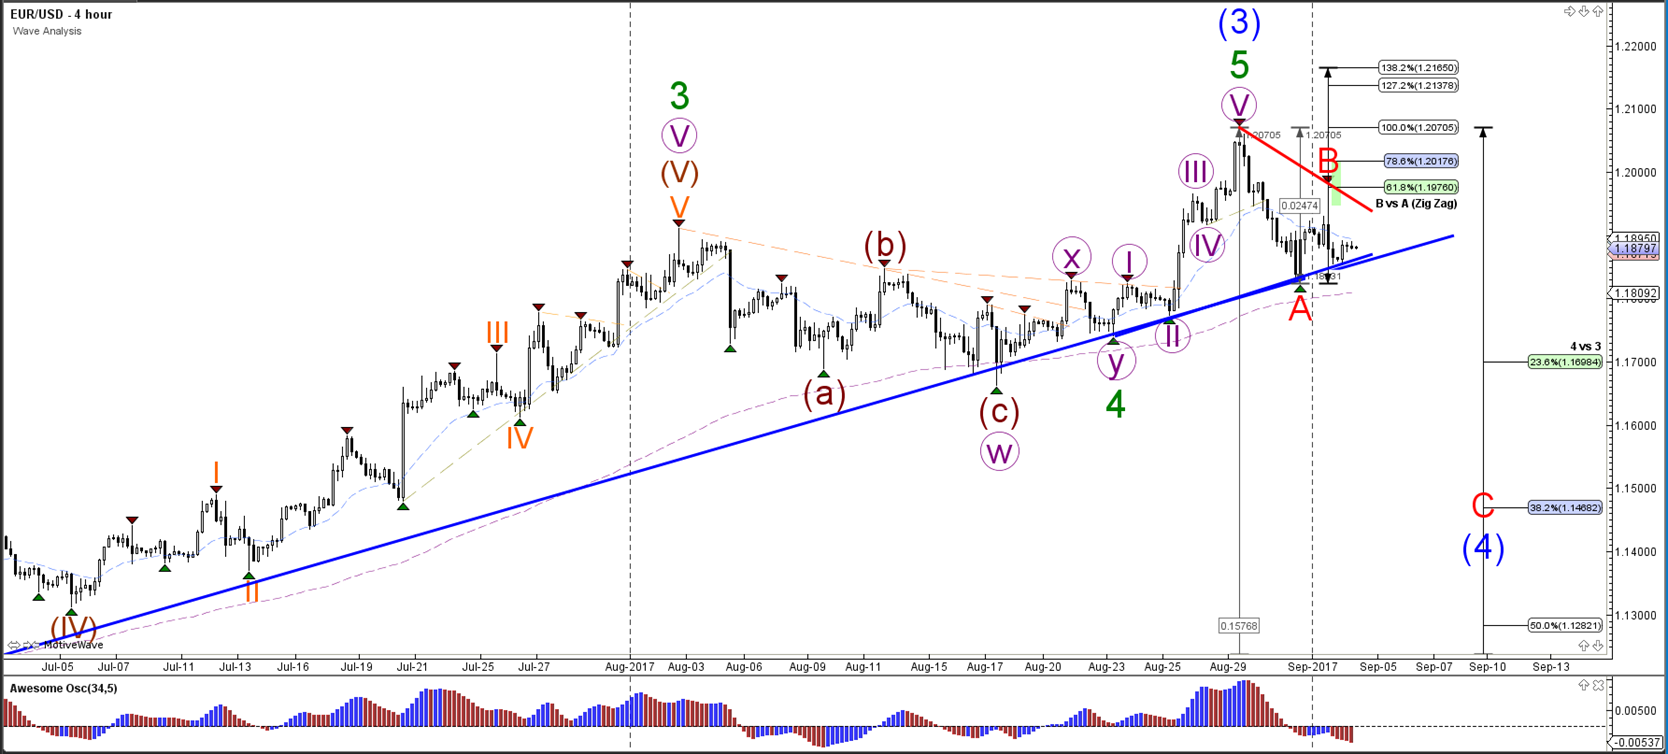 EUR/USD is building larger ABC correction within wave 4